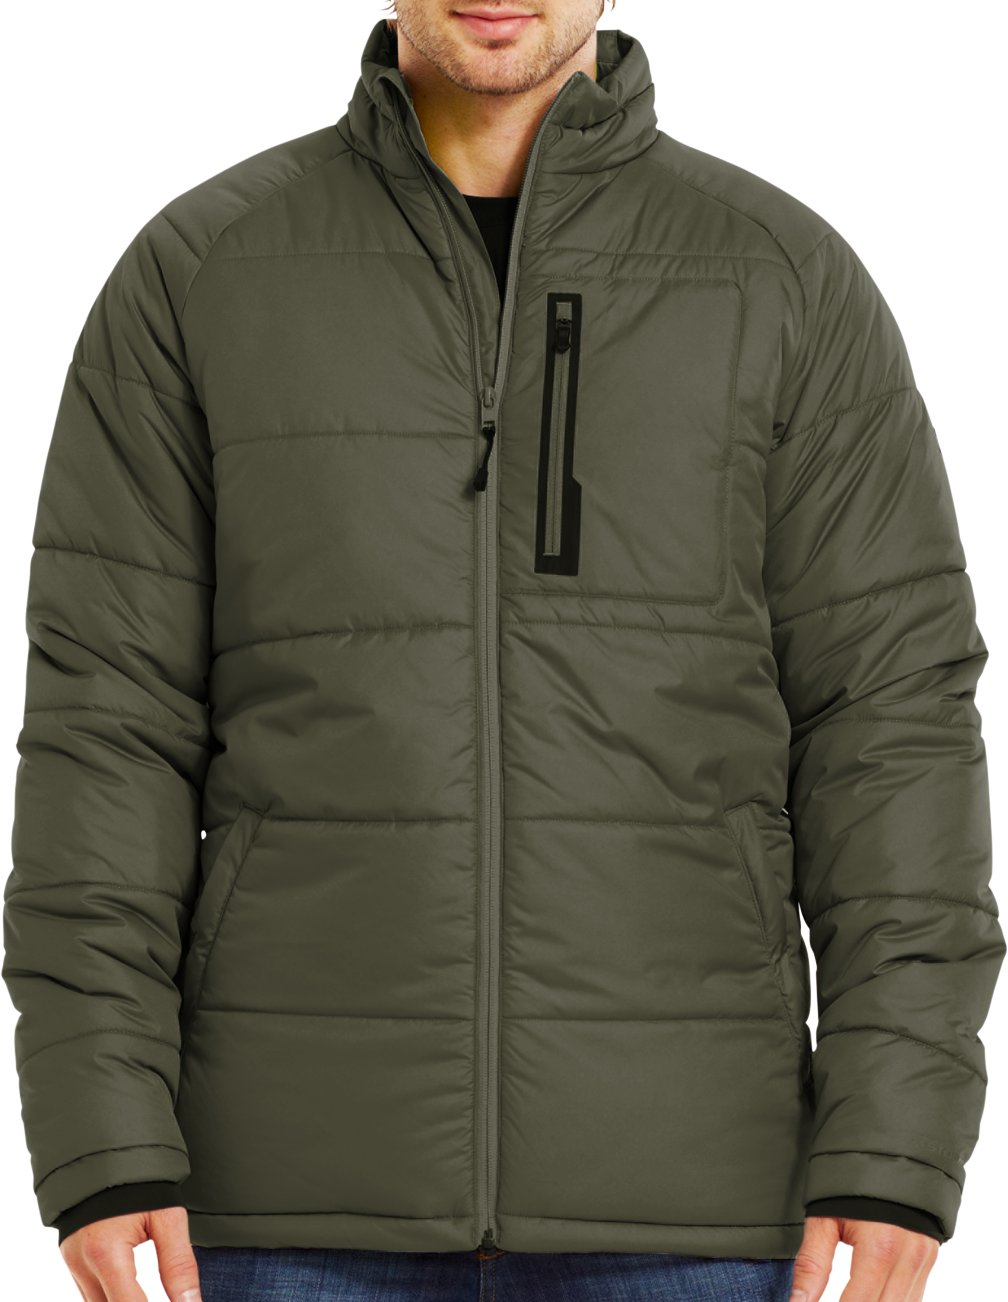 Men's ColdGear® Infrared Alpinlite Max Jacket, GREENHEAD, Front